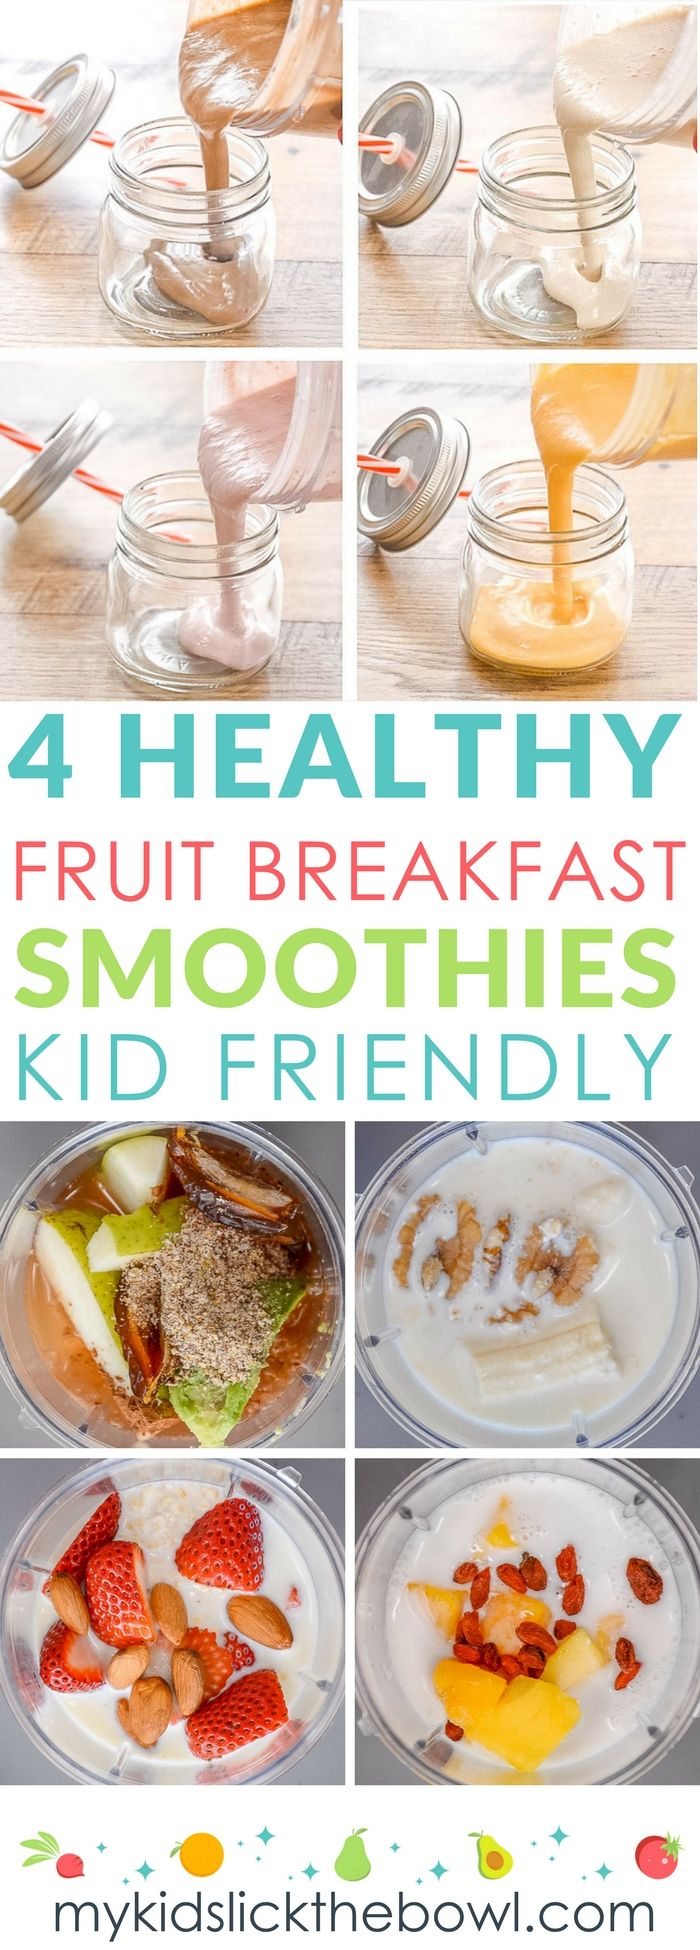 4 Healthy fruit breakfast smoothies for kids, easy recipes with loaded with healthy fats and grains #healthykids #smoothies